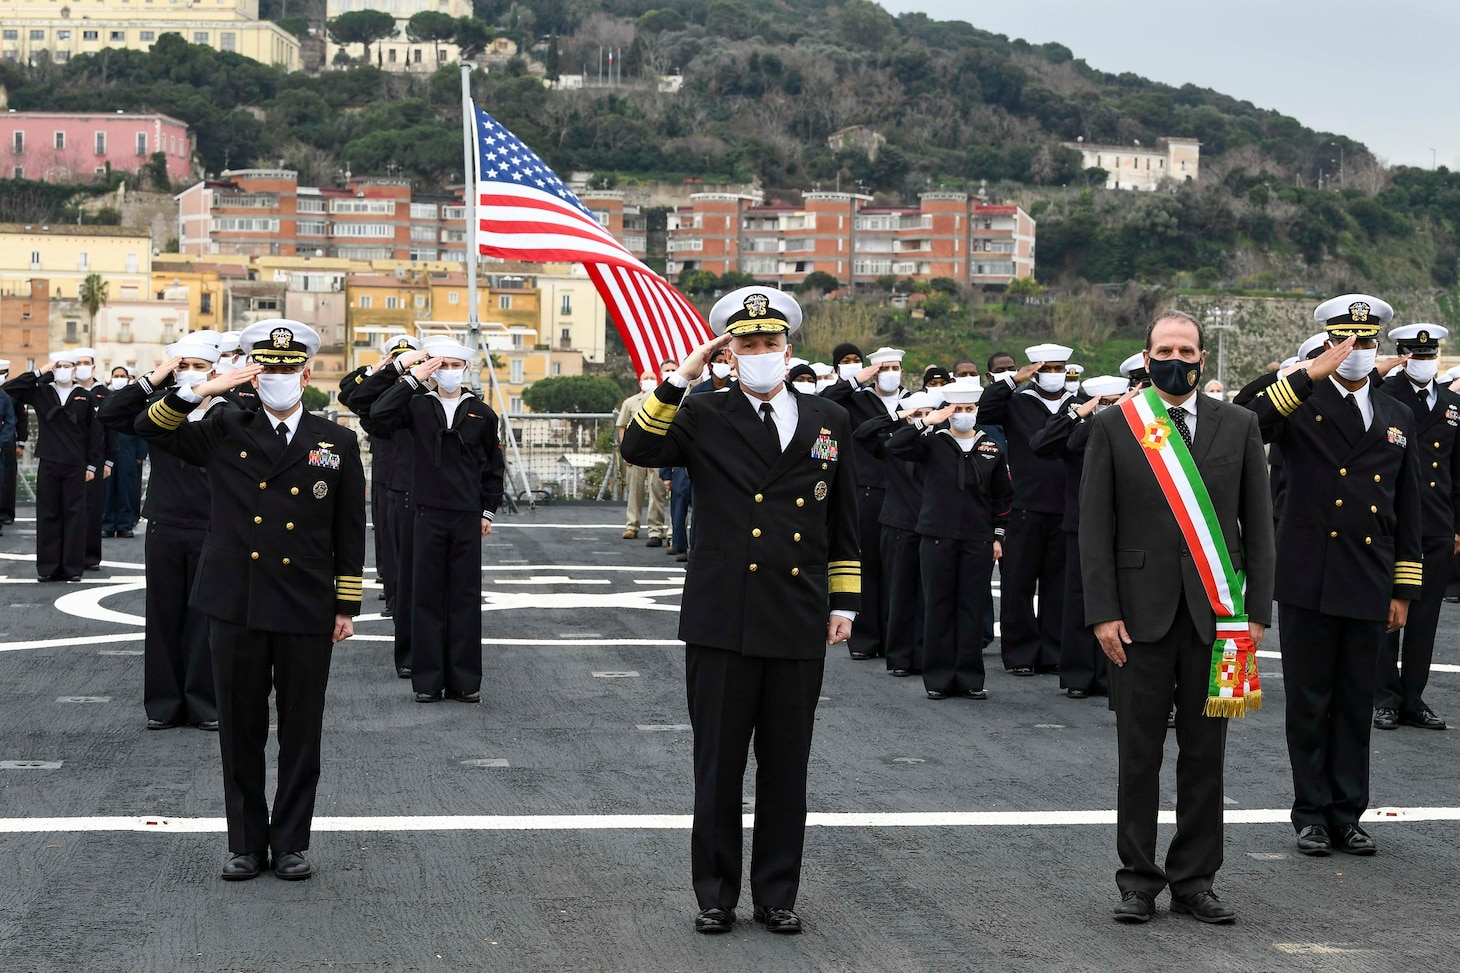 120114-N-XT273-0030 GAETA, Italy (Jan. 14, 2021) Capt. Dave Pollard, USS Mount Whitney commanding officer, left, Vice Adm. Gene Black, Commander, U.S. Sixth Fleet, center, Cosmo Mitrano, Mayor of Gaeta, and the crew of the U.S. Sixth Fleet command and control ship USS Mount Whitney (LCC 20) stand in formation during the ship's 50th anniversary celebration, Jan. 14, 2021, in Gaeta, Italy. U.S. Sixth Fleet, headquartered in Naples, Italy, conducts the full spectrum of joint and naval operations, often in concert with allied and interagency partners, in order to advance U.S. national interests, security and stability in Europe and Africa. (U.S. Navy photo by Chief Mass Communication Specialist Justin Stumberg/ Released)